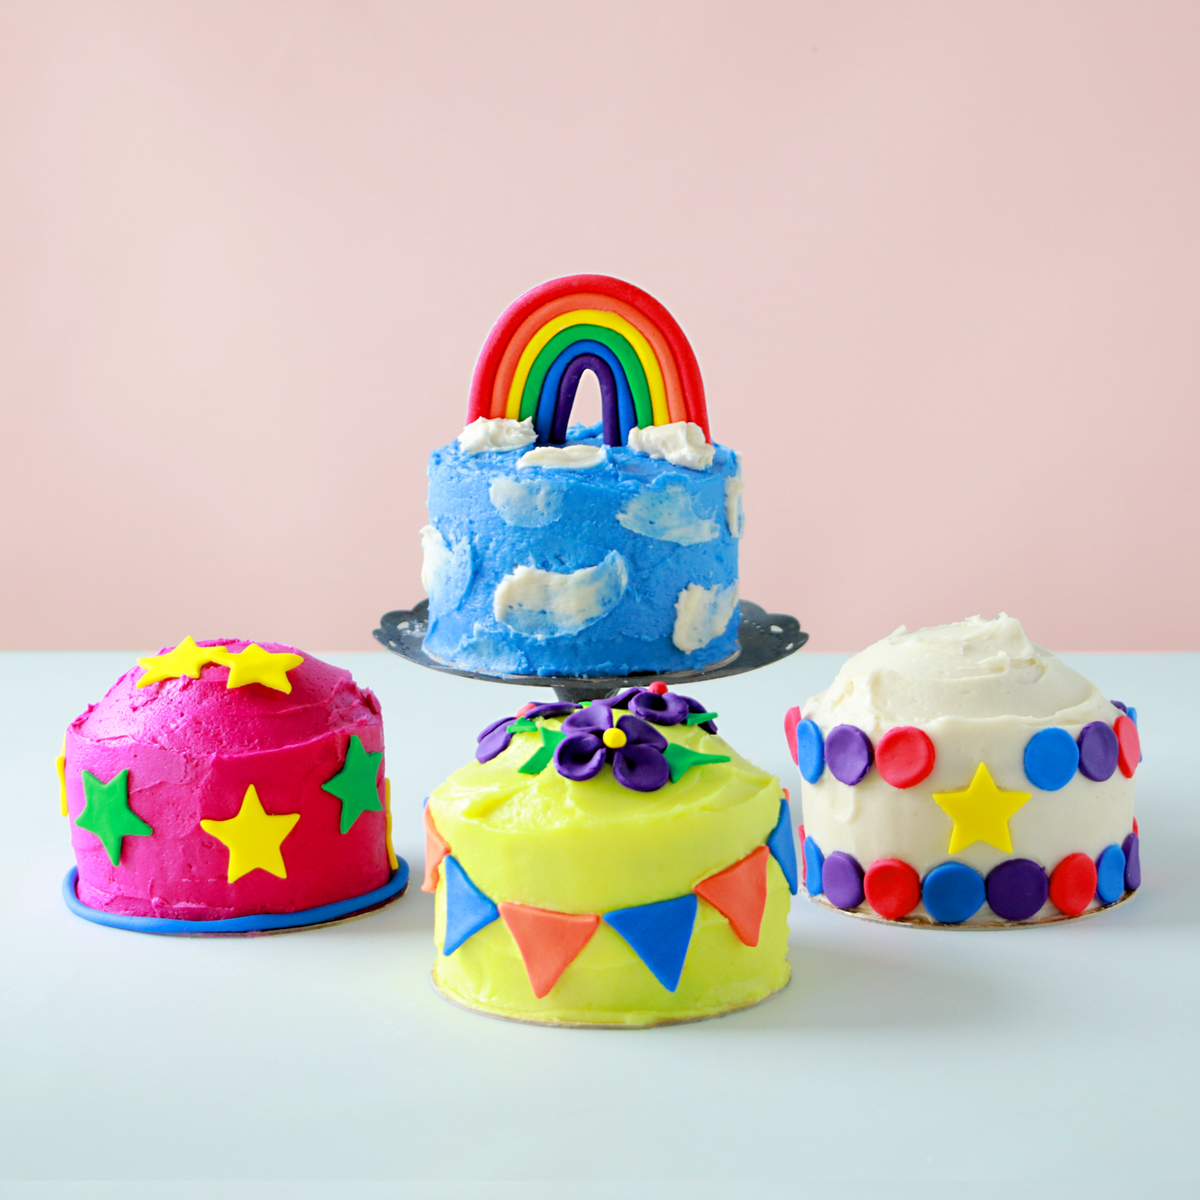 Mini Cakes - Easy baking homemade cakes made from a Poppikit cake kit